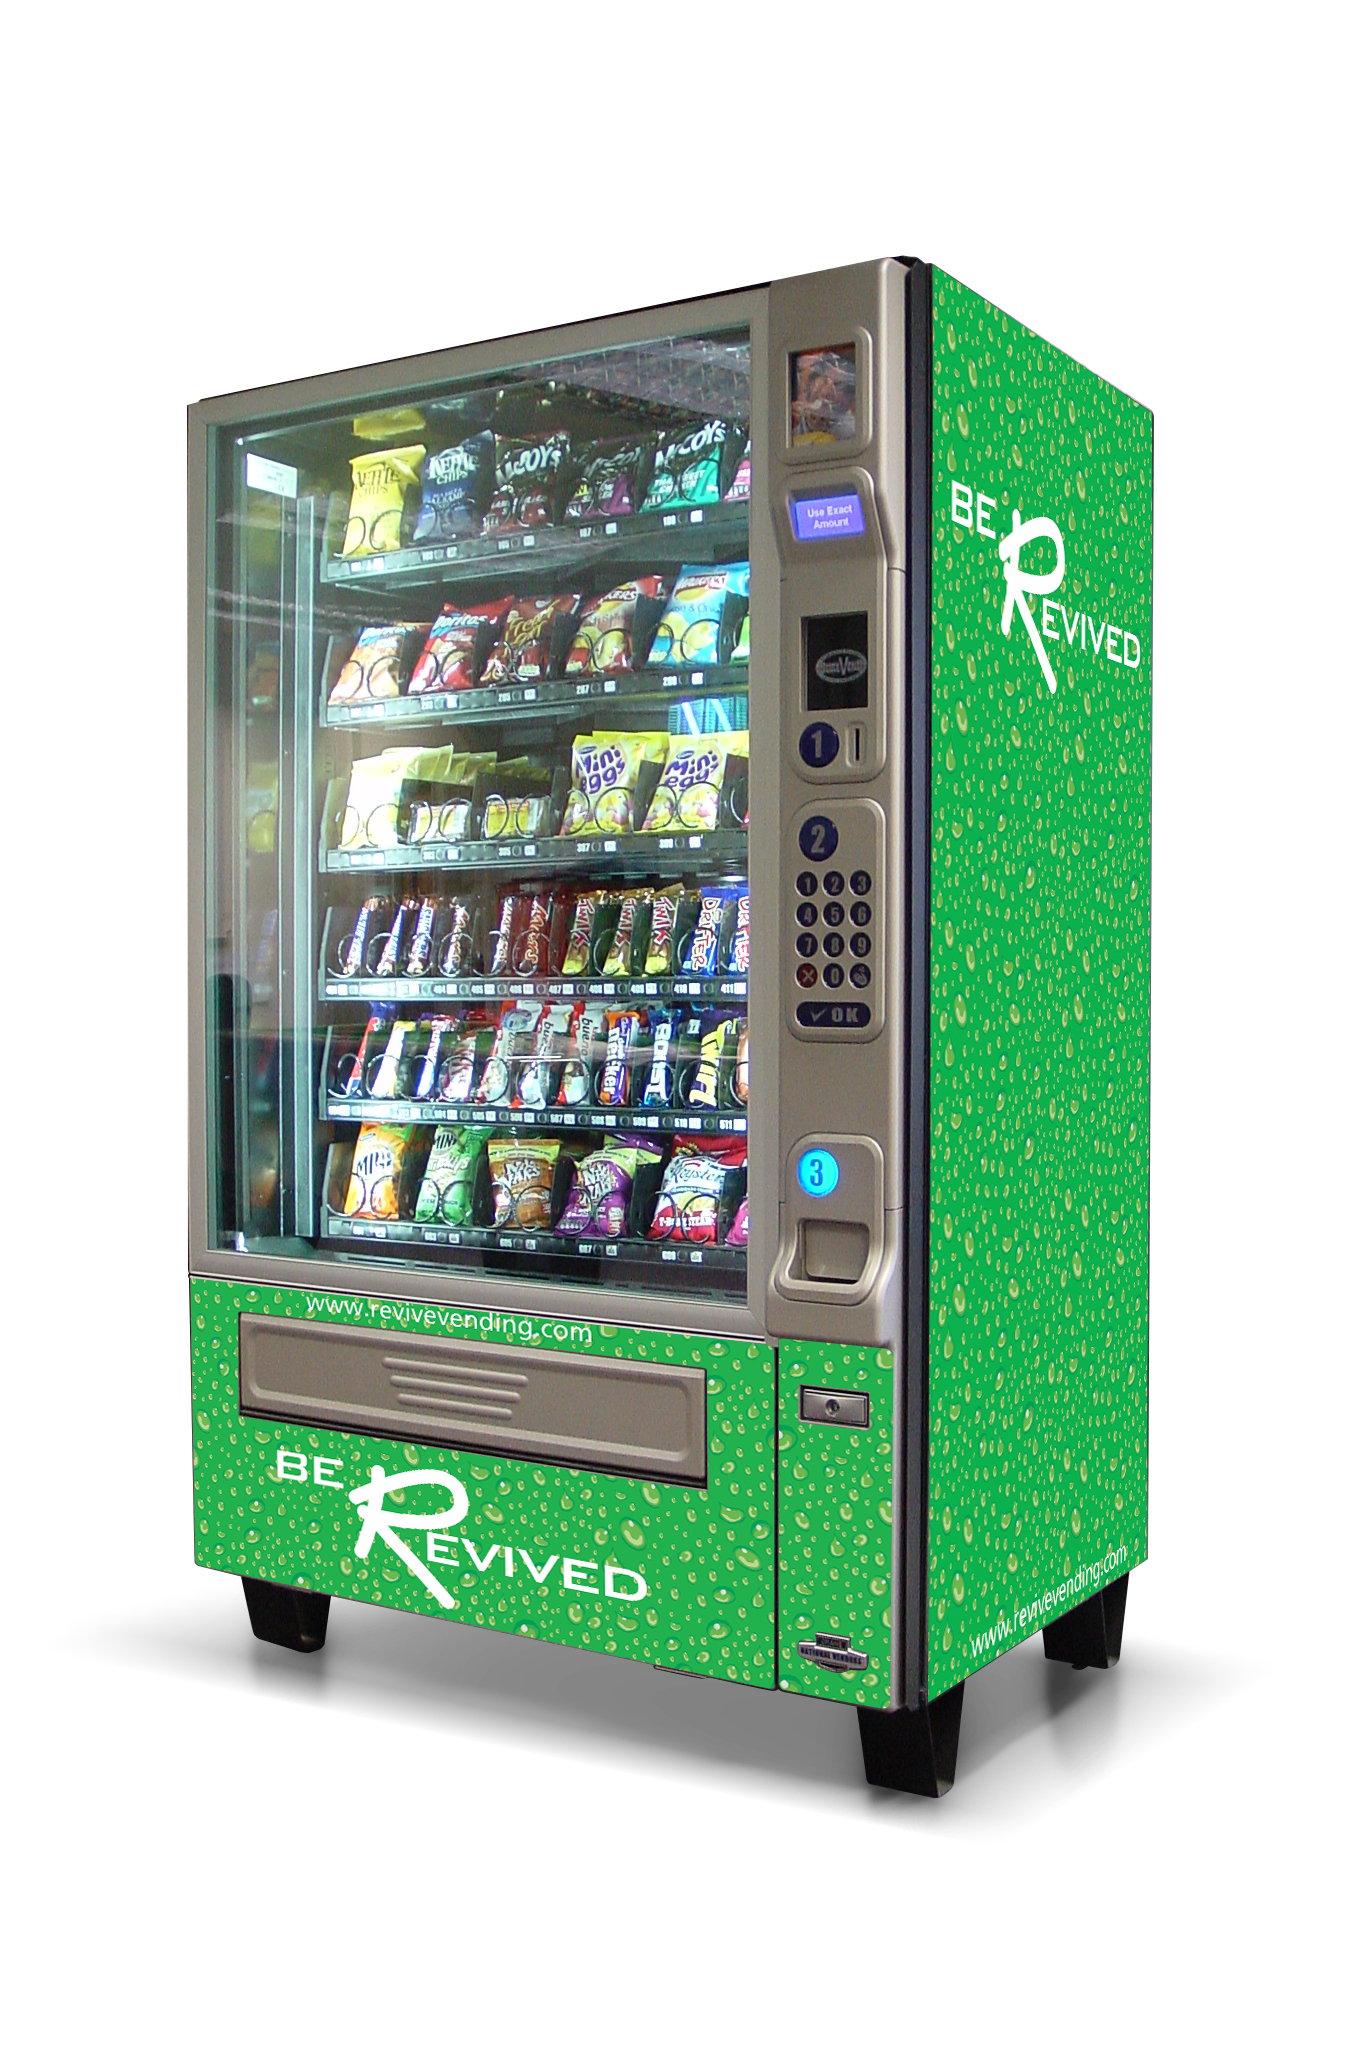 How To Make More Money By Choosing The Right Refurnished Vending Machines?